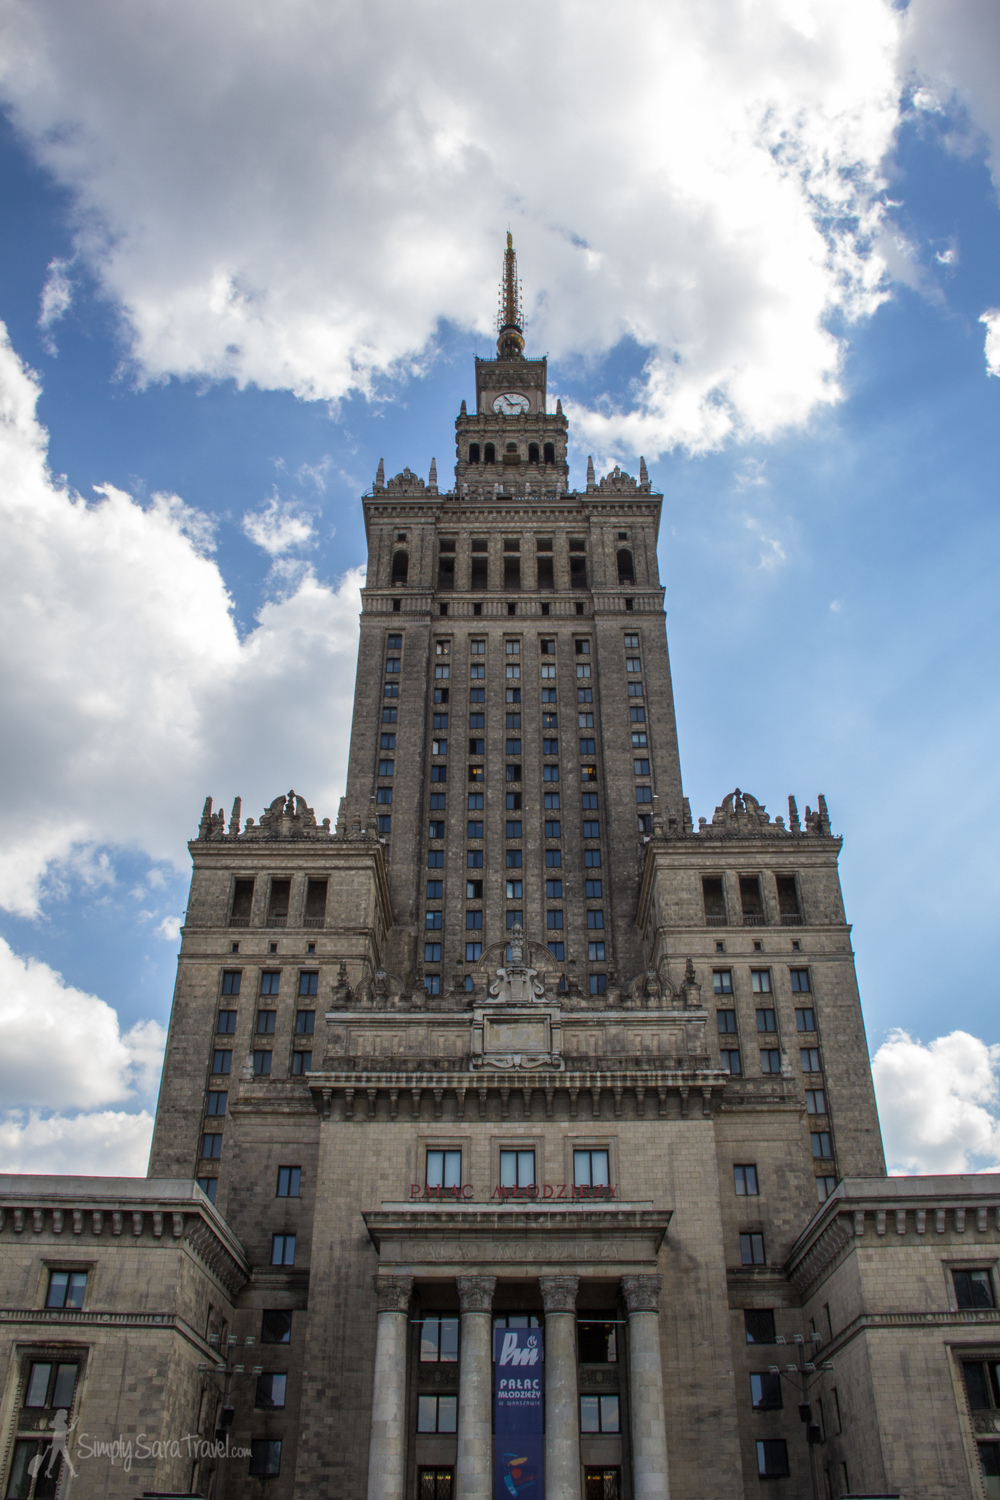 You can pop up to the 30th floor's observation deck, though as we discovered, the view isn't noteworthy. The Palace of Culture and Science itself is one of the skyline's highlights, so it doesn't help when you're looking out from this building at the rest of Warsaw.